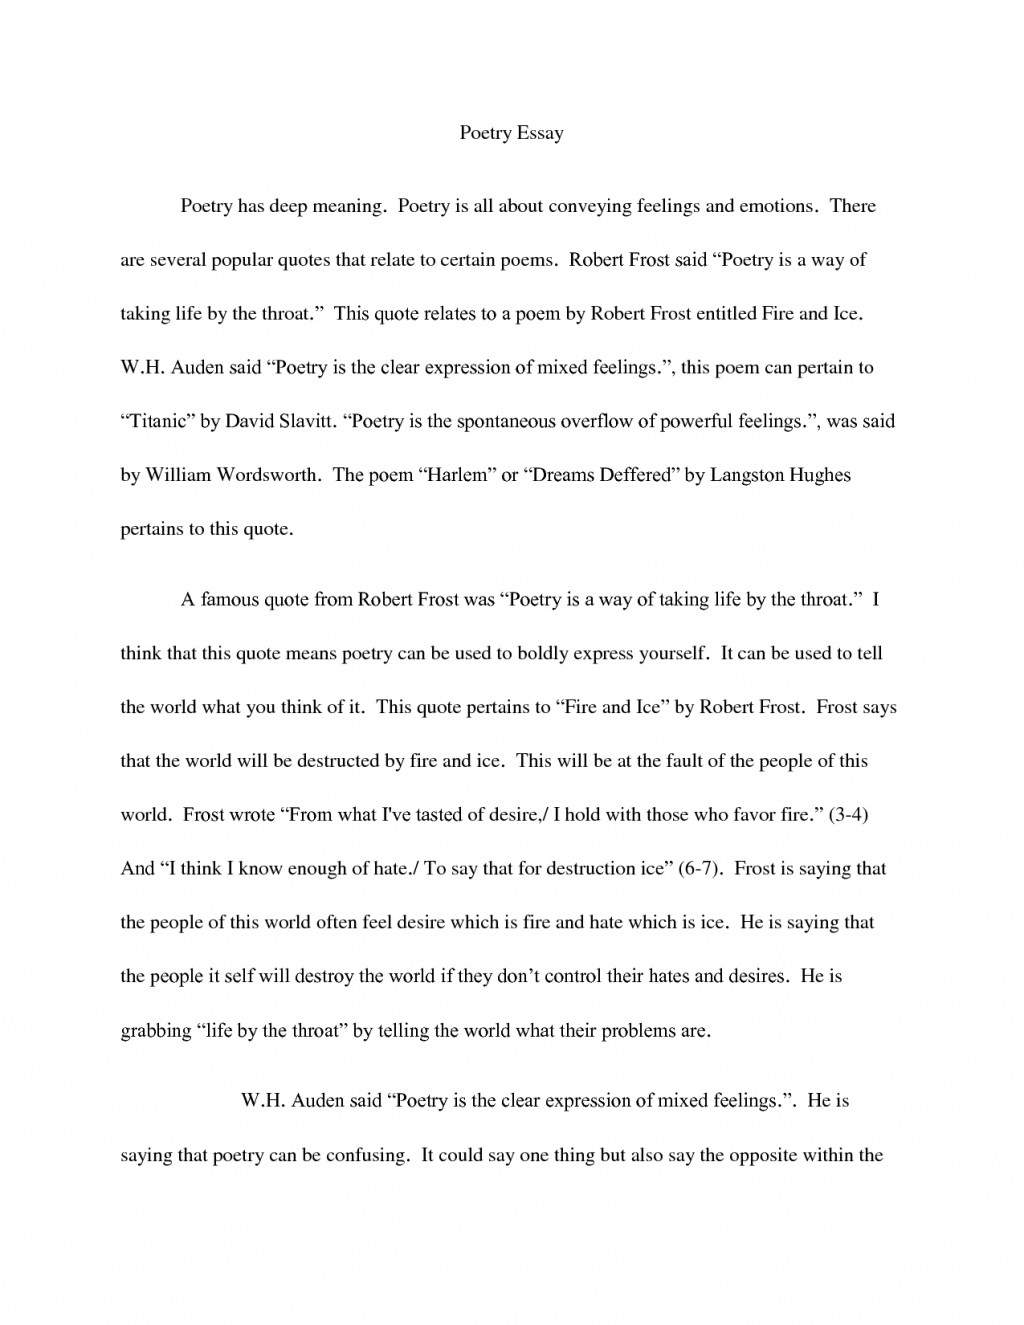 001 Essay Example How To Write An With Quotes Imposing In Mla Integrate Quotations Writing Essays-apa Or Include A Direct Quote Apa Large